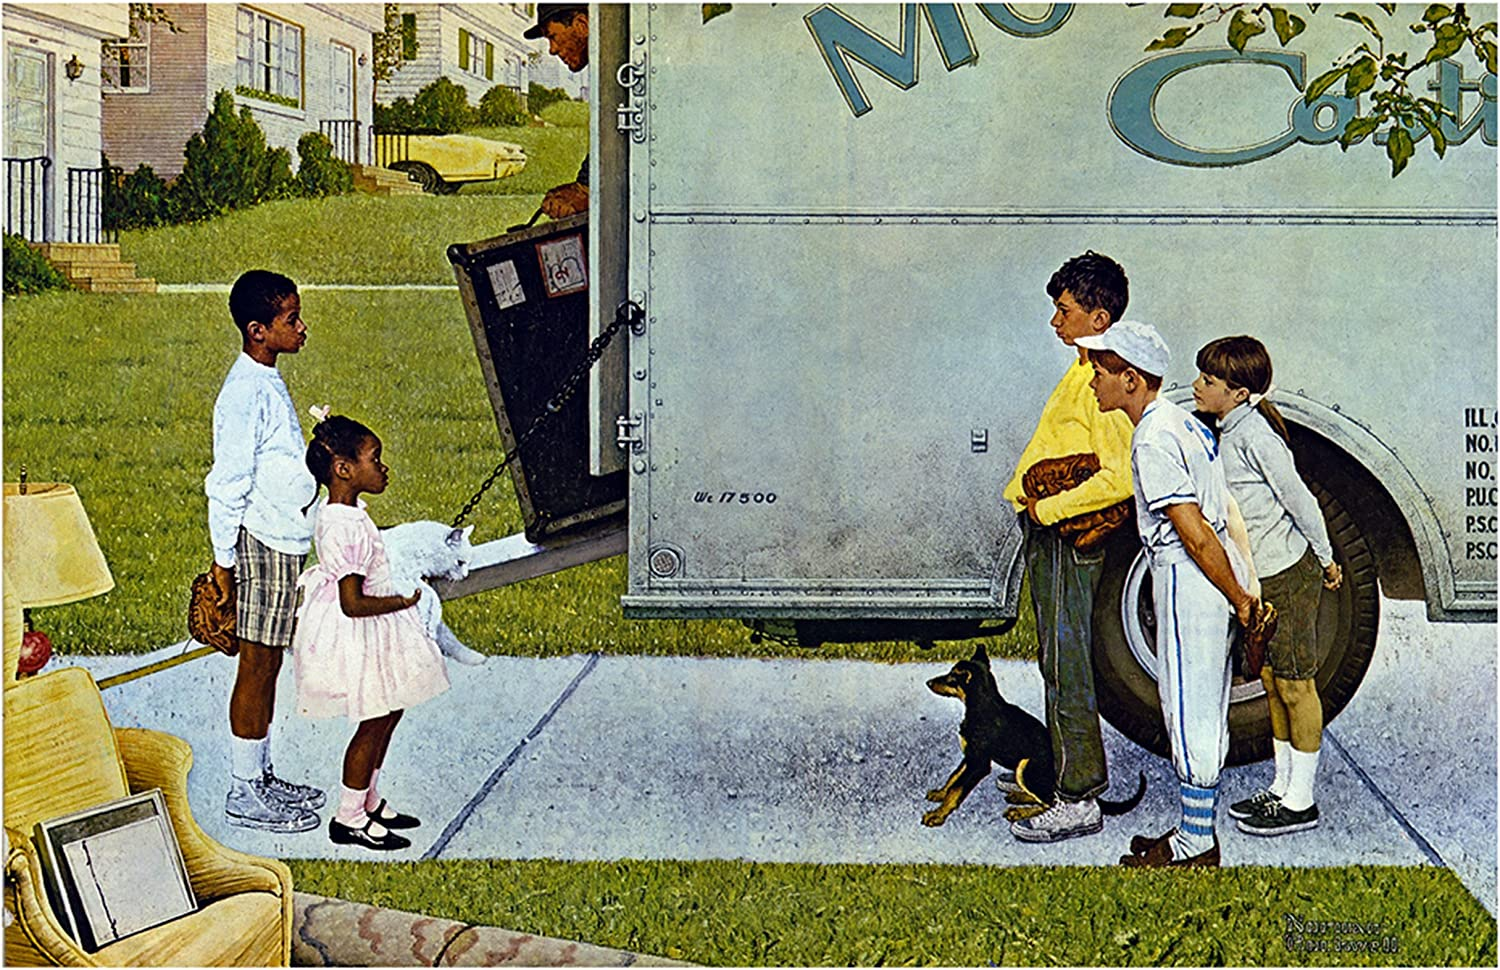 Norman Rockwell Strolling Print A WALK IN THE COUNTRY